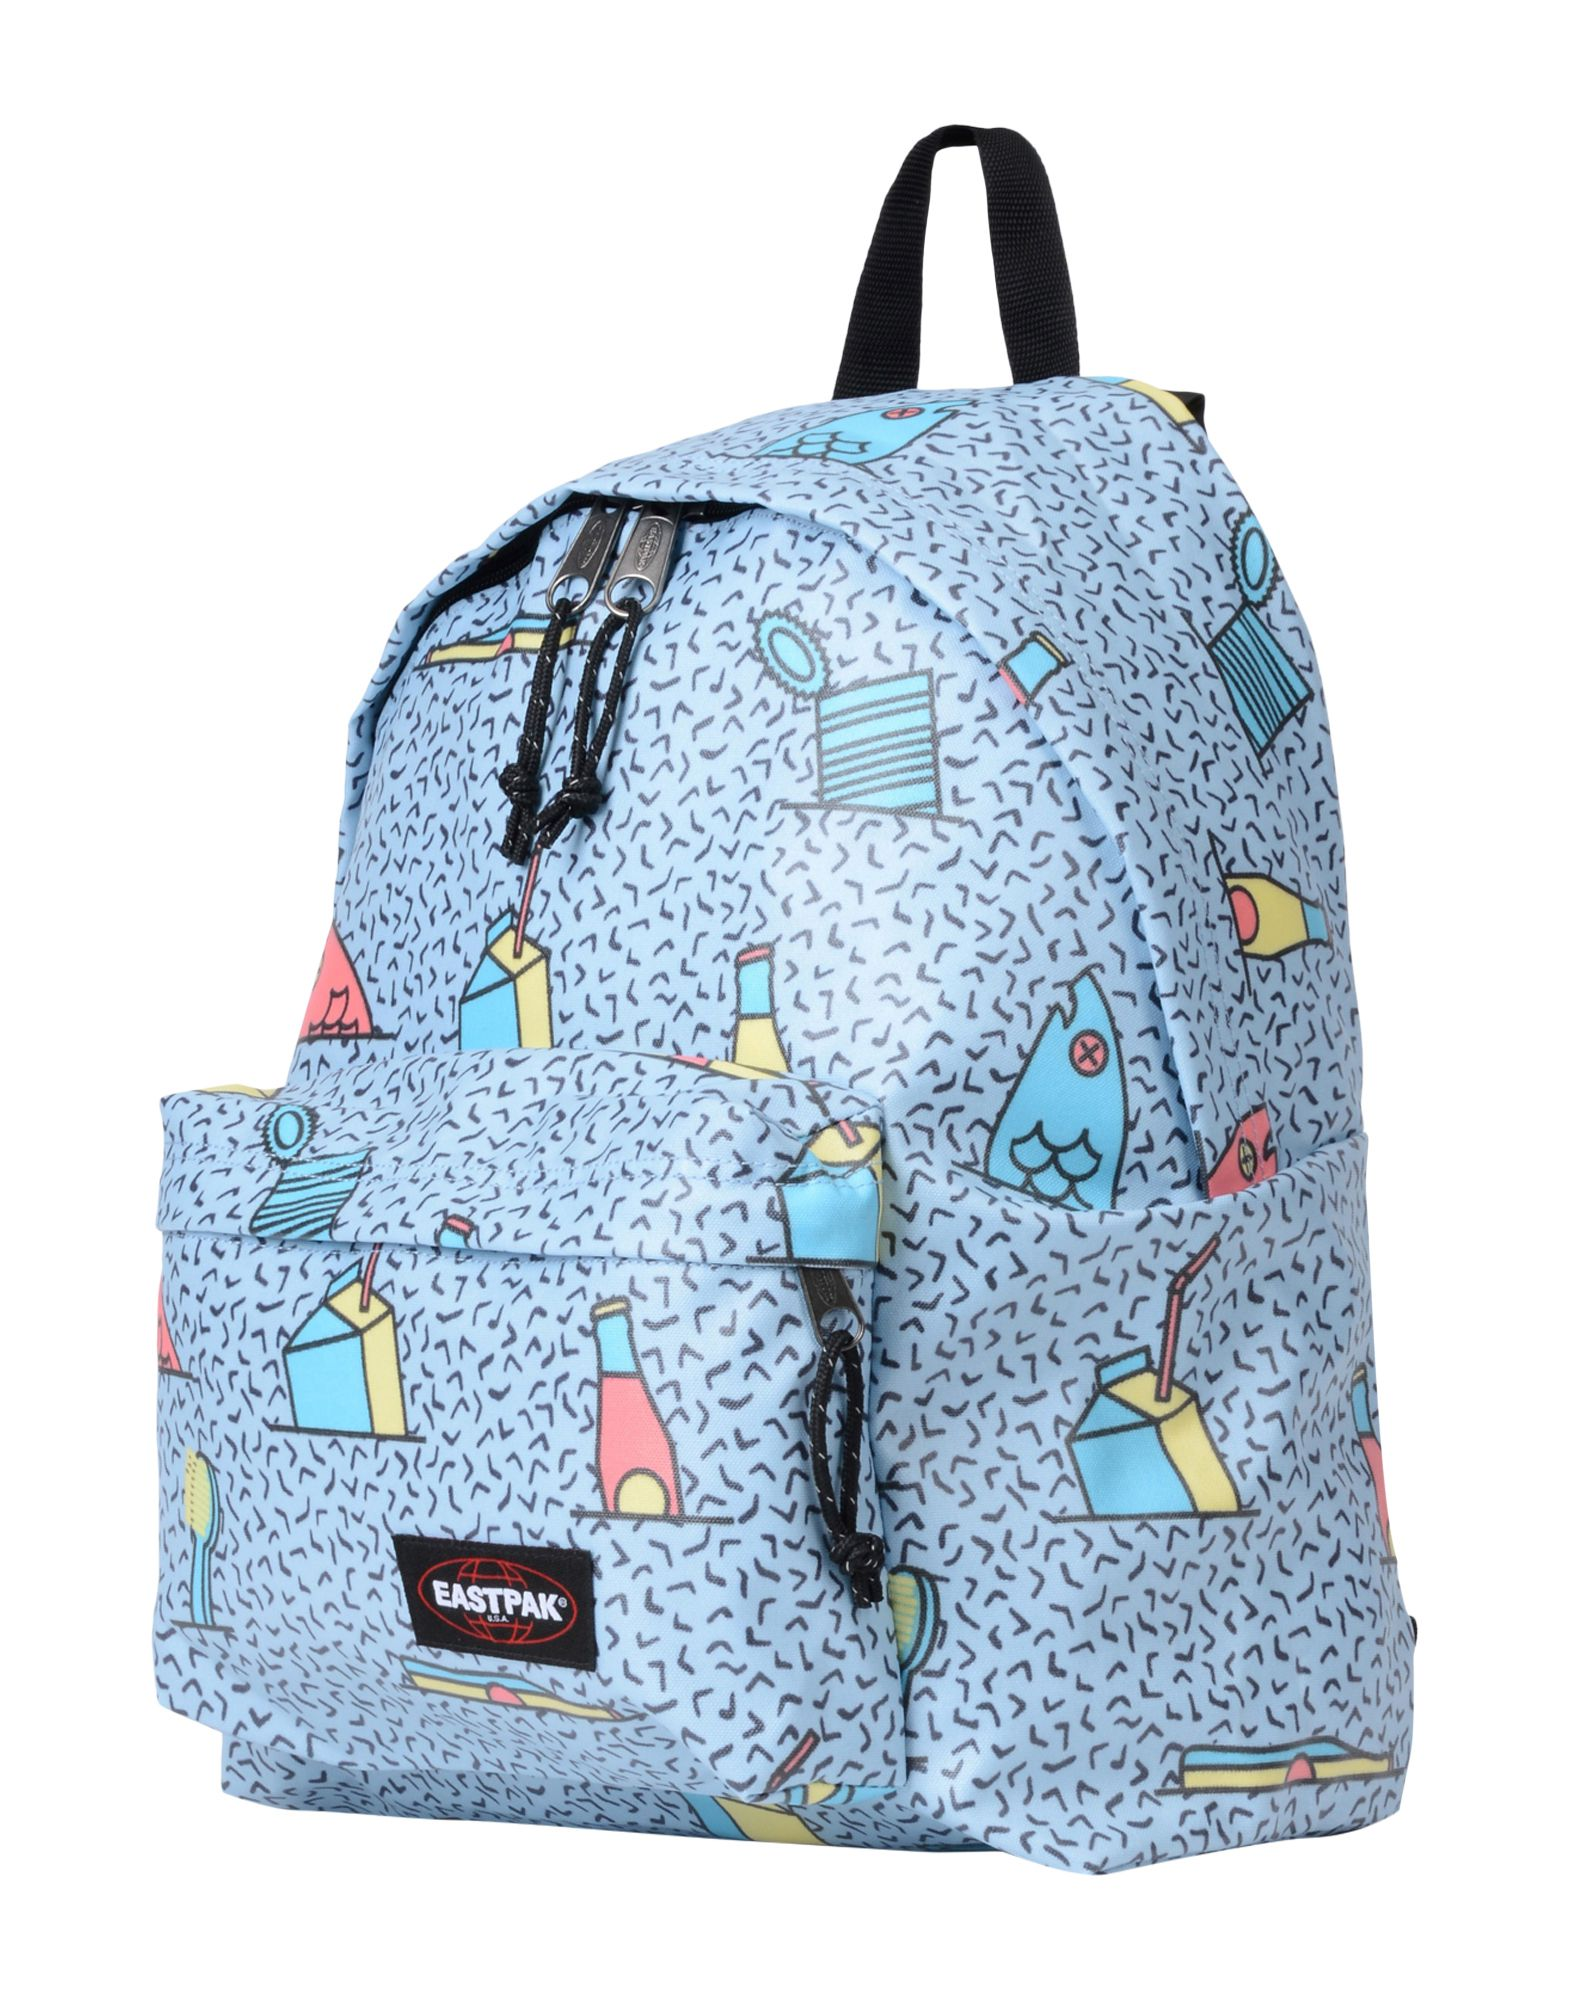 eastpak backpacks fanny packs shop at ebates. Black Bedroom Furniture Sets. Home Design Ideas